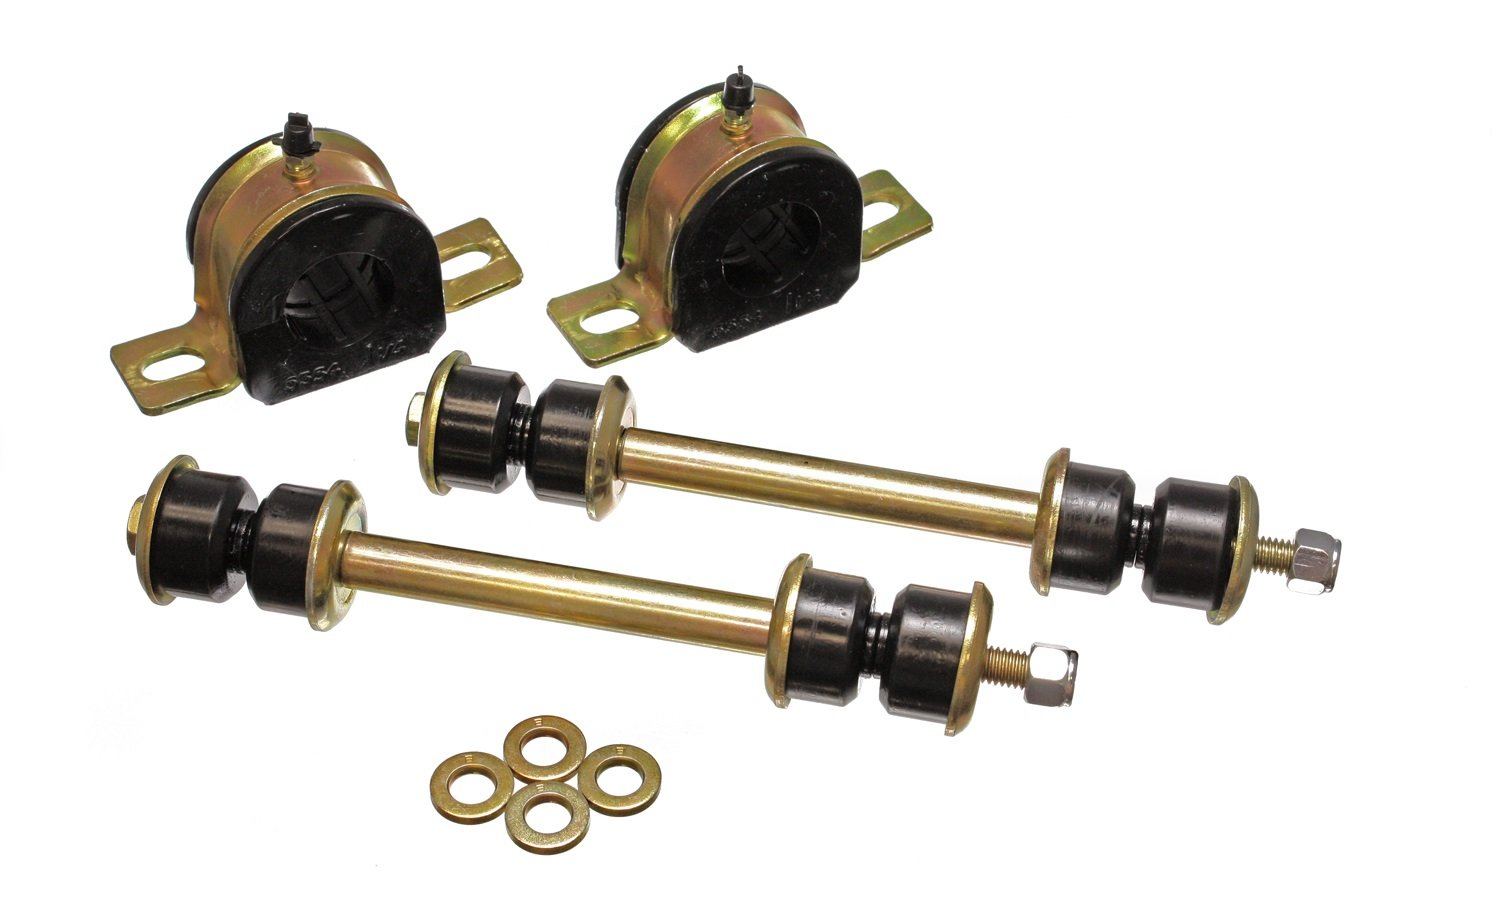 Energy Suspension 35214G 32 mm Front Sway Bar Set for GM by Energy Suspension